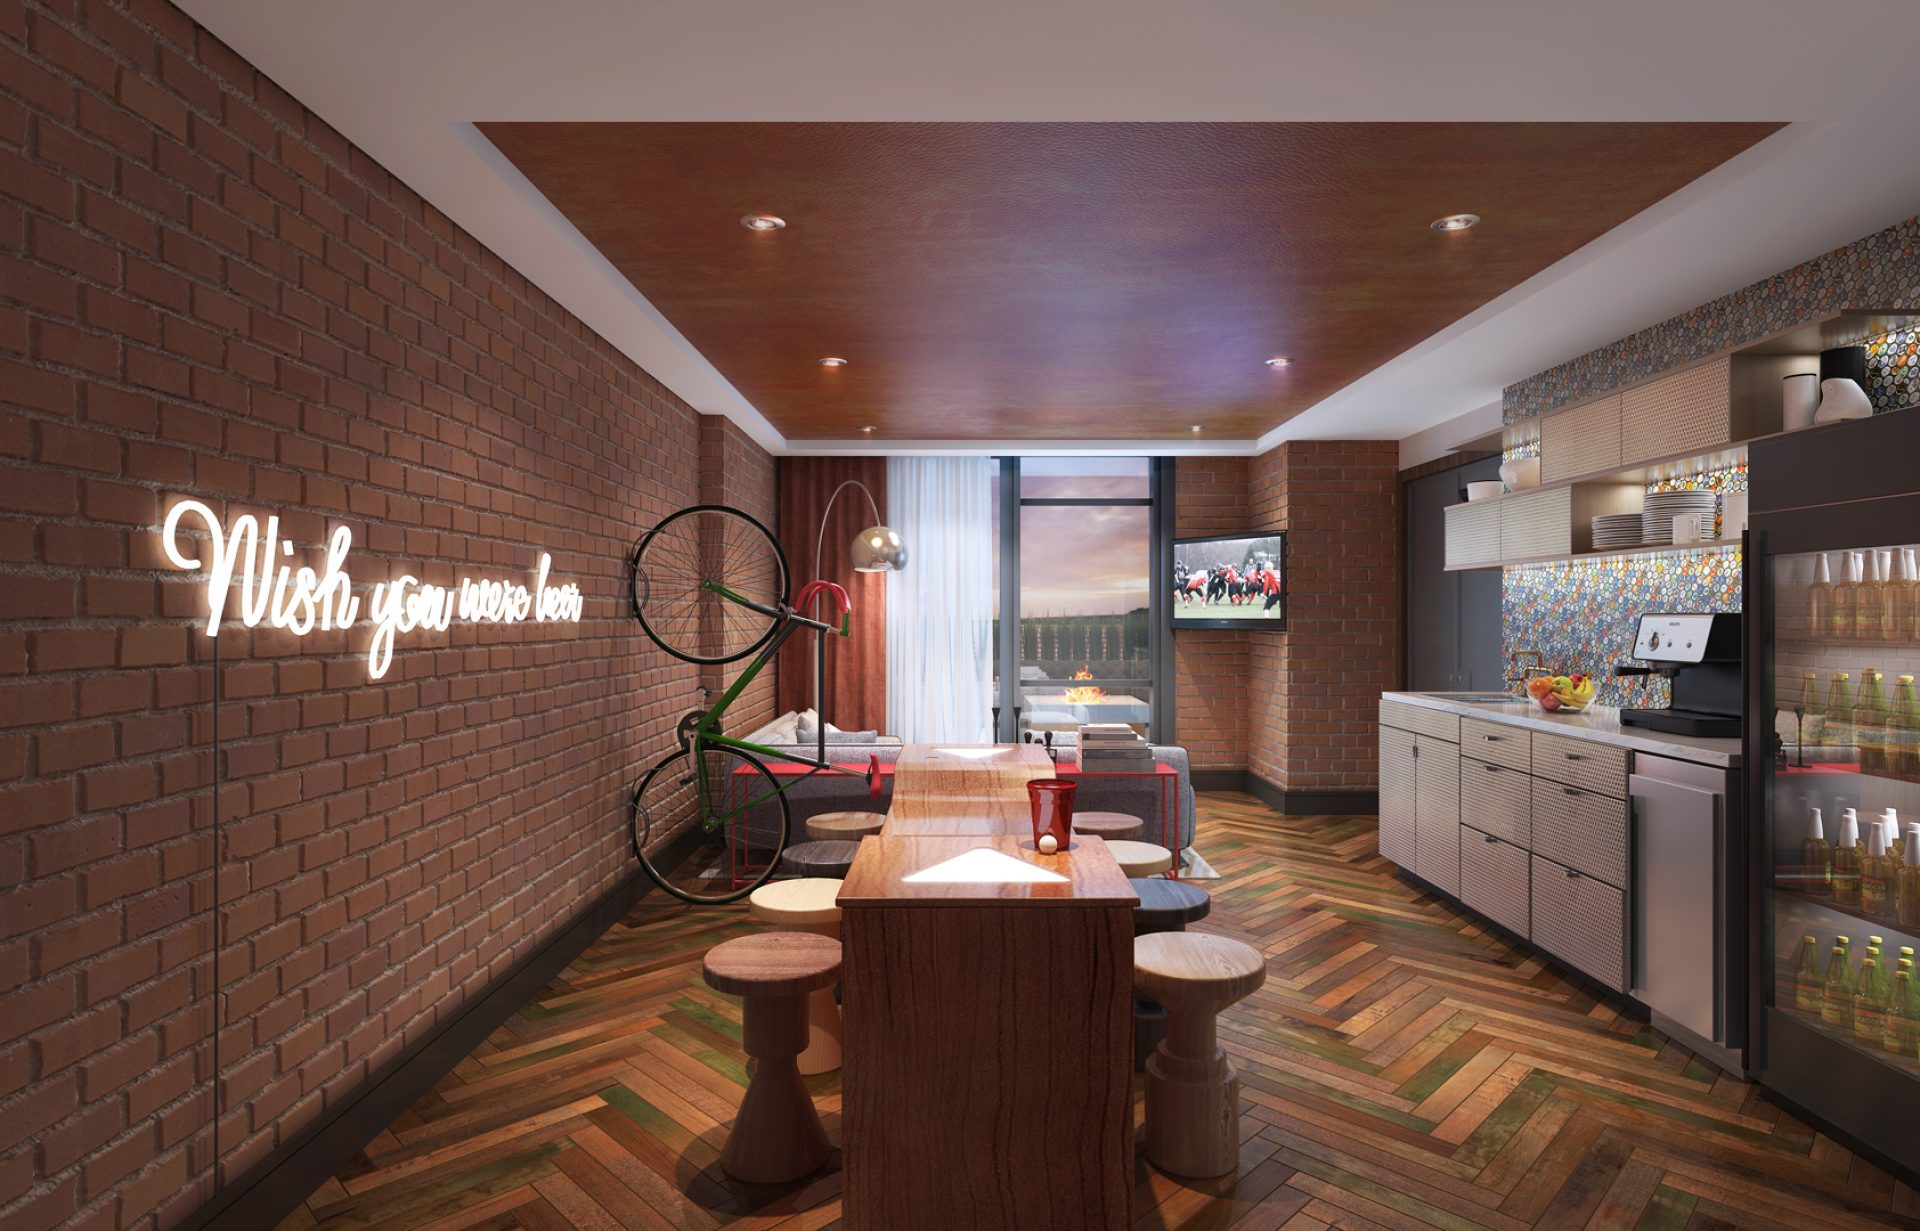 Themed Hotel Rooms In Milwaukee Wisconsin